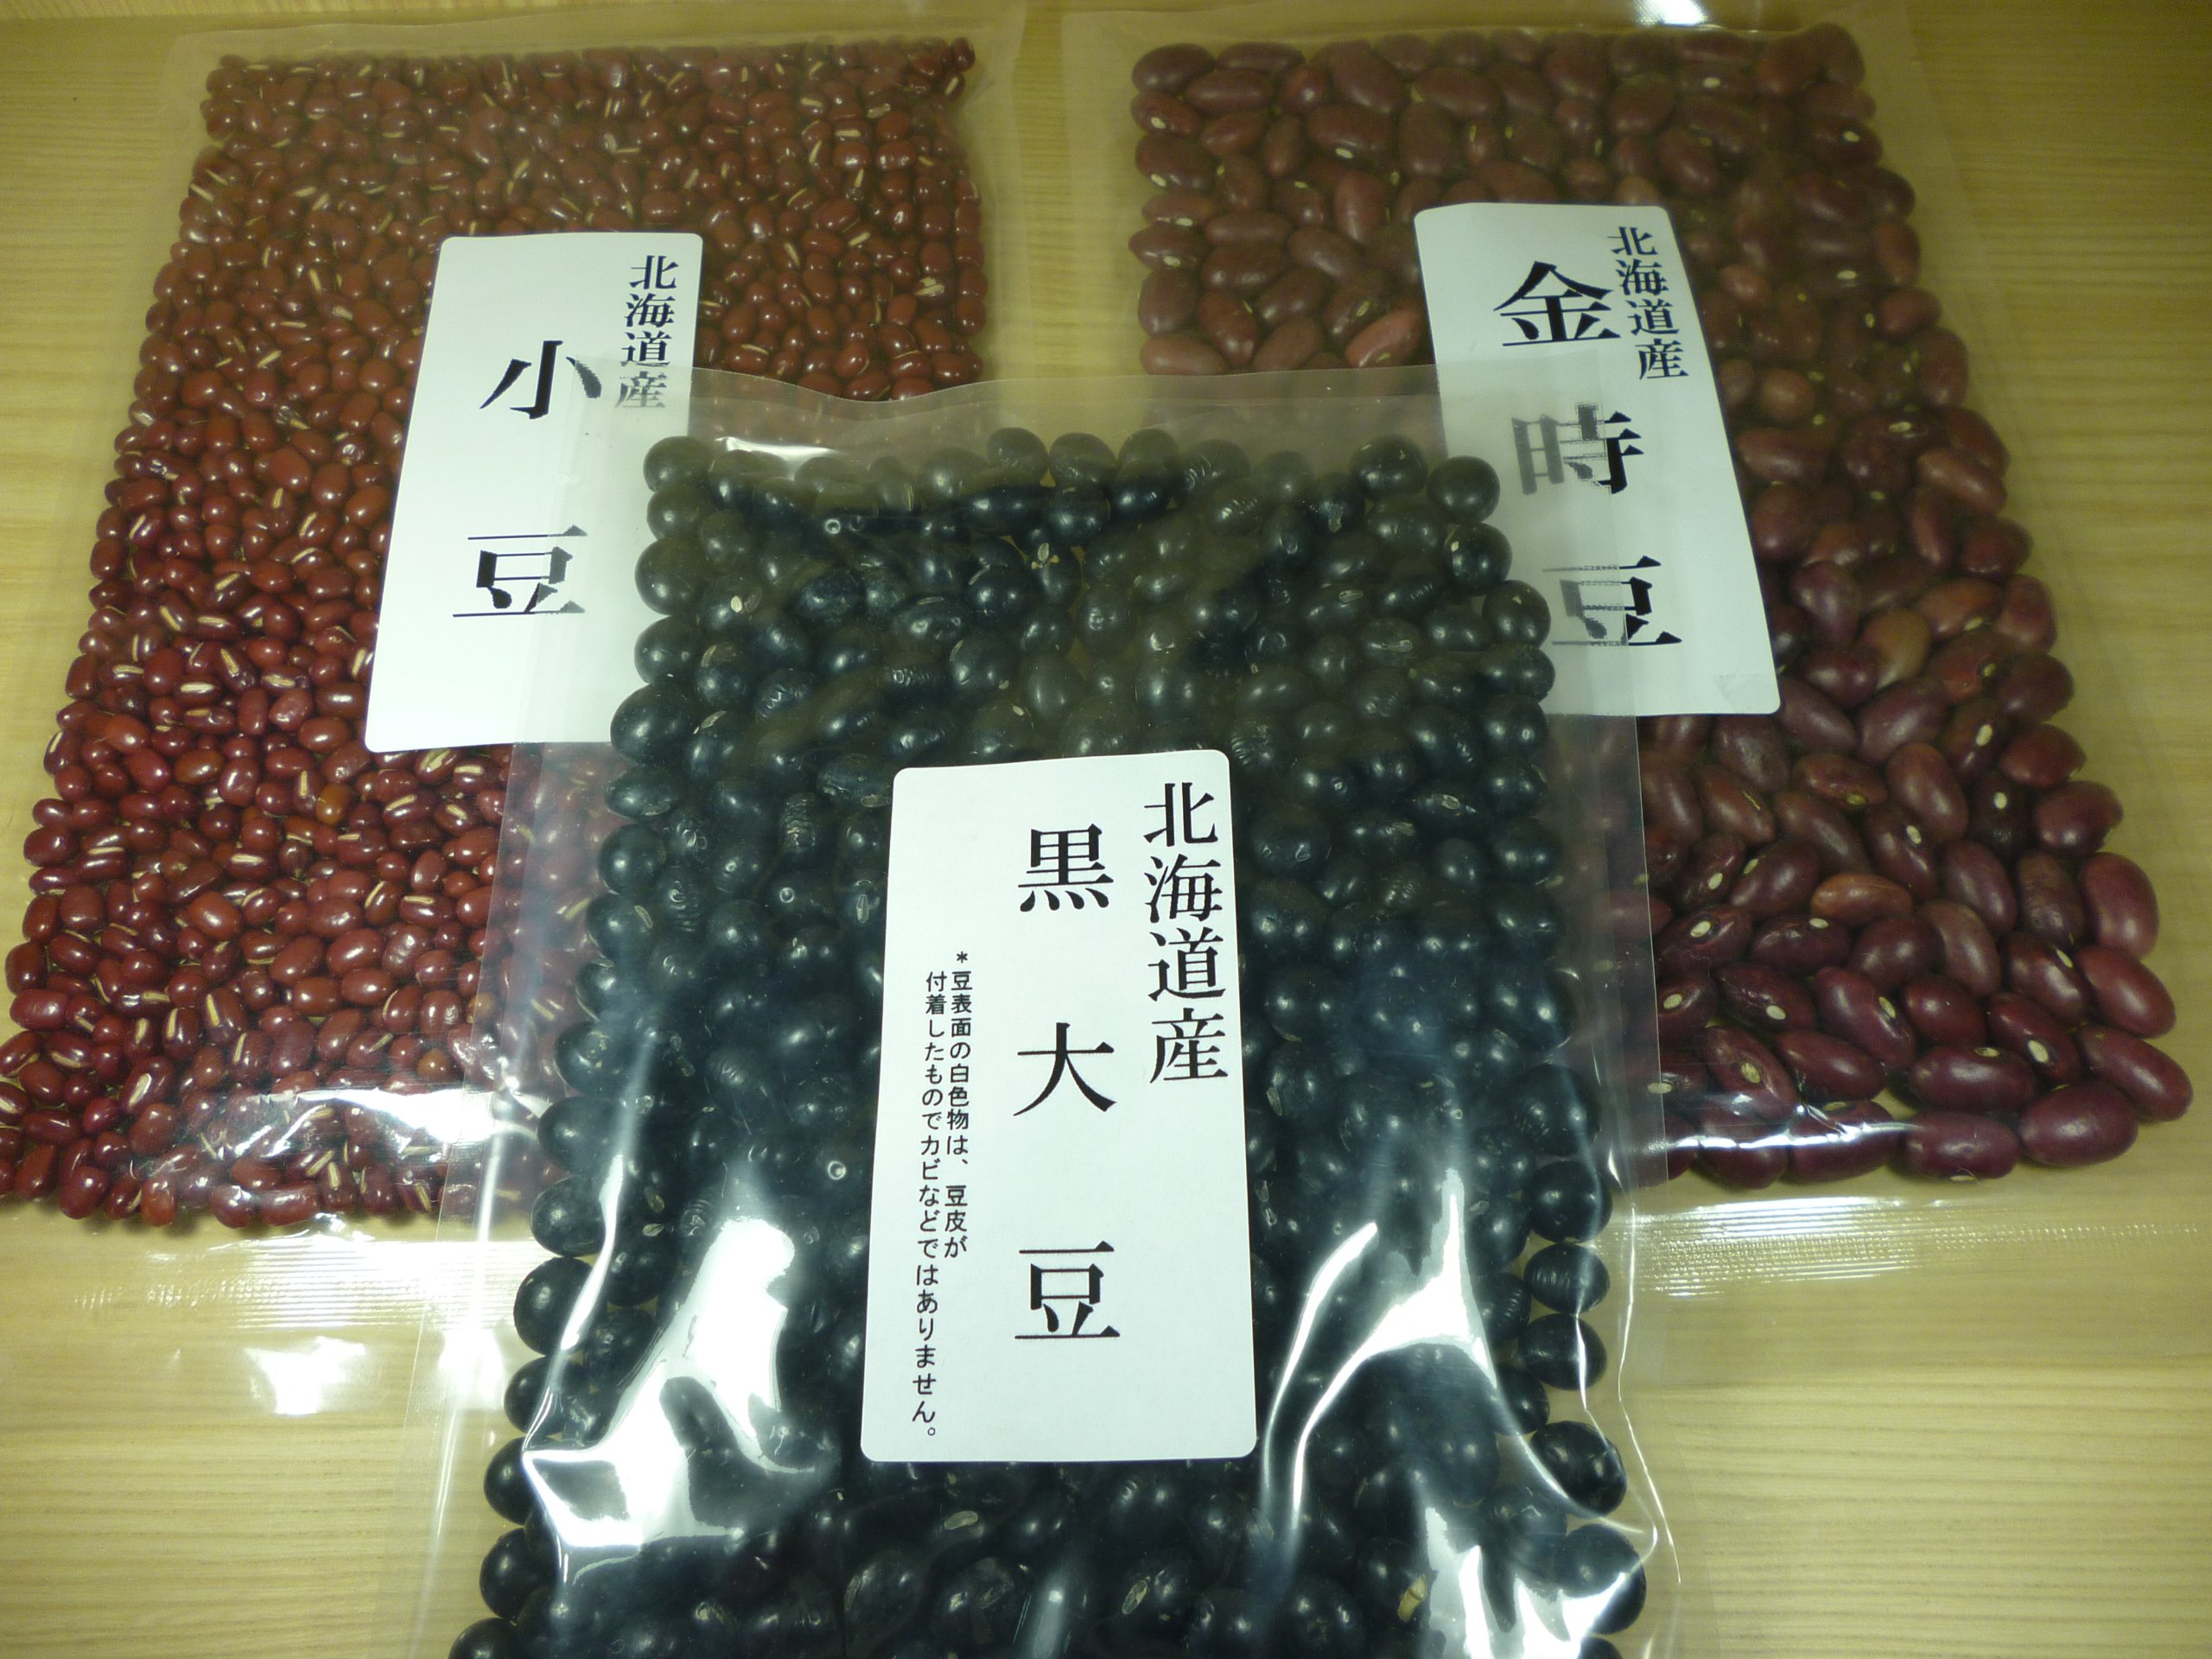 From the select direct store in Sapporo in Hokkaido.JAPAN Hokkaido Adzuki beans cooked with sugar Kintoki bean 4pieces and Black soybean Black daizu bean 4pieces and Azuki bean. Azuki bean 4pieces. A total of 12 pieces Highest-class Careful selection good by kintki and black daizu and azuki bean